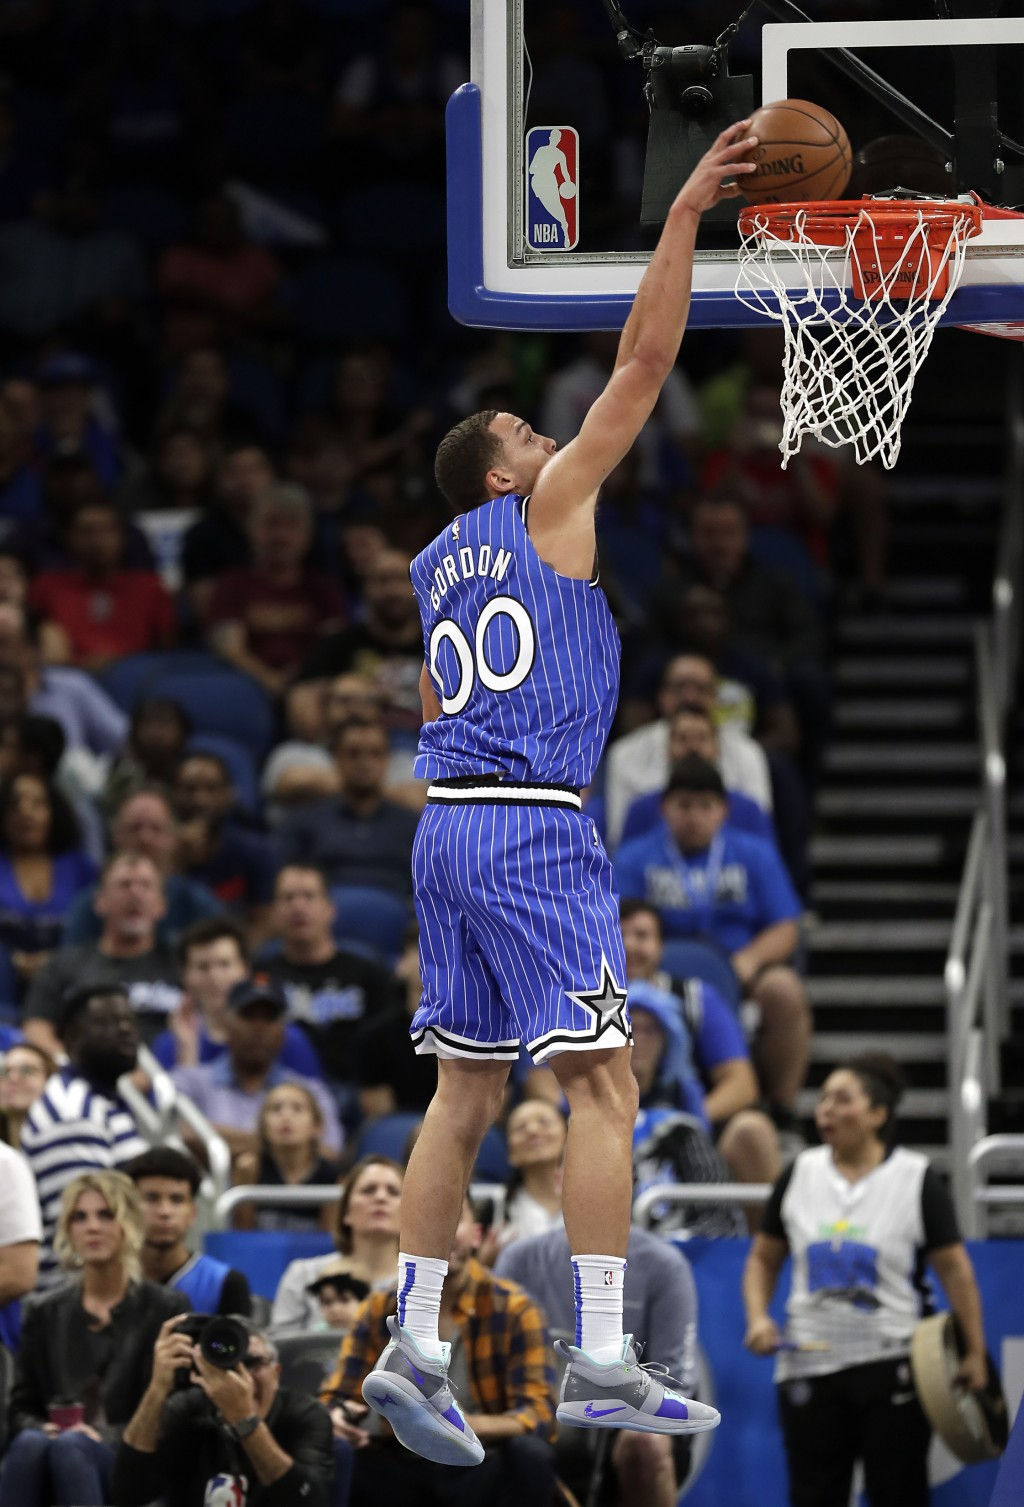 Orlando Magic's Aaron Gordon (00) makes an uncontested dunk against the Washington Wizards during the first half of an NBA basketball game, Friday, No